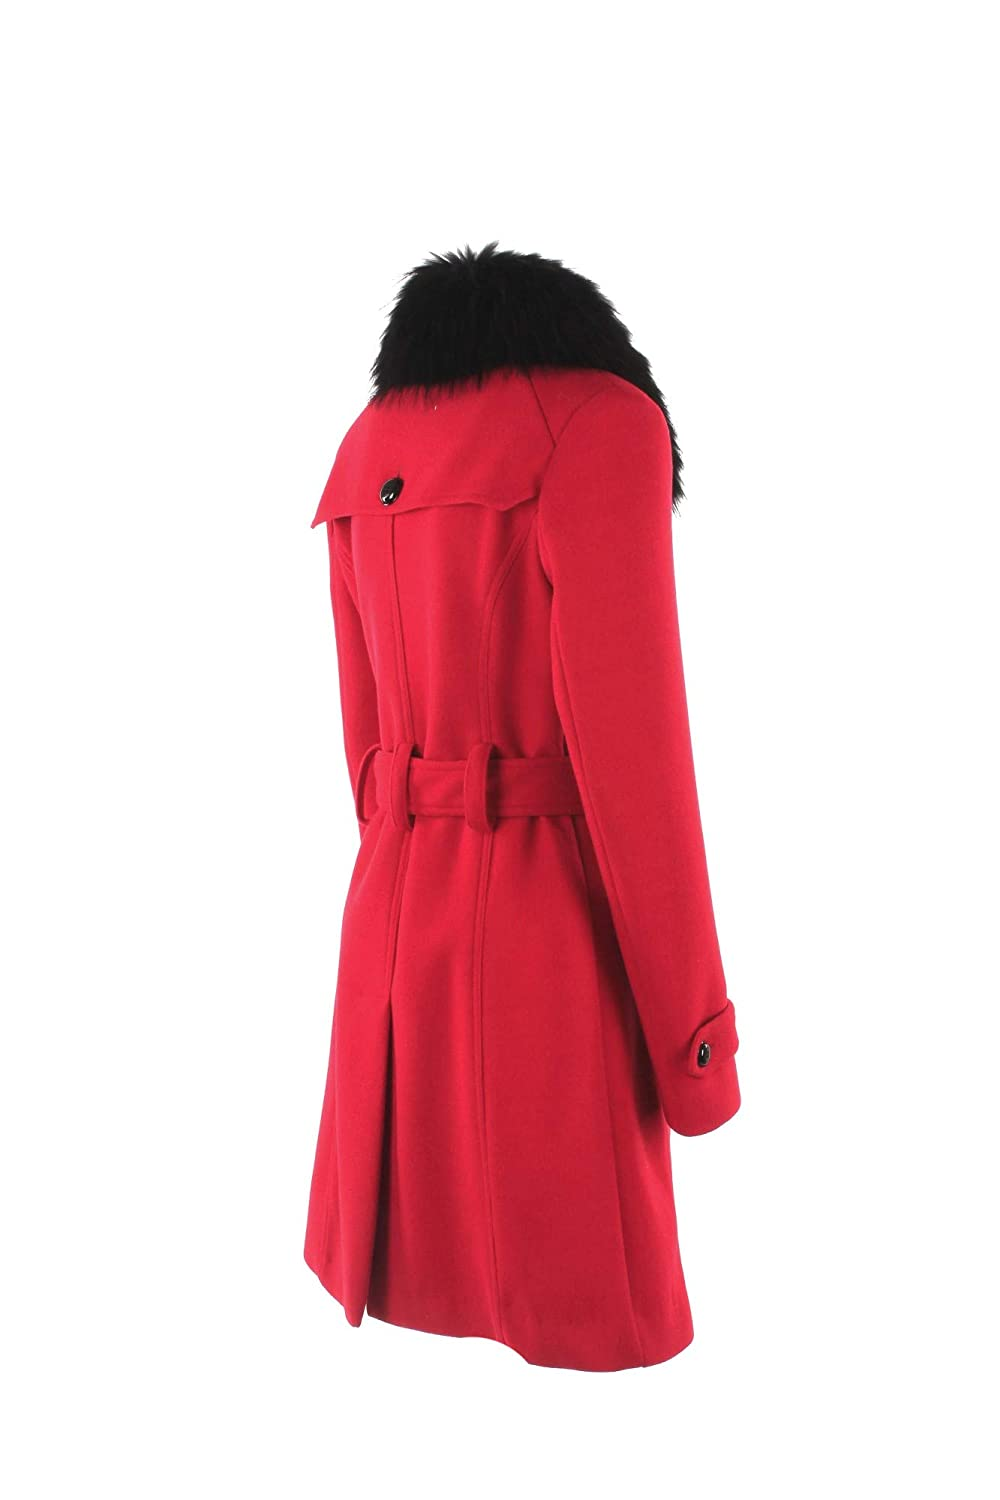 KOCCA Cappotto Donna L Rosso Ecrufur Autunno Inverno 2018 19  Amazon.co.uk   Clothing a11283087c7